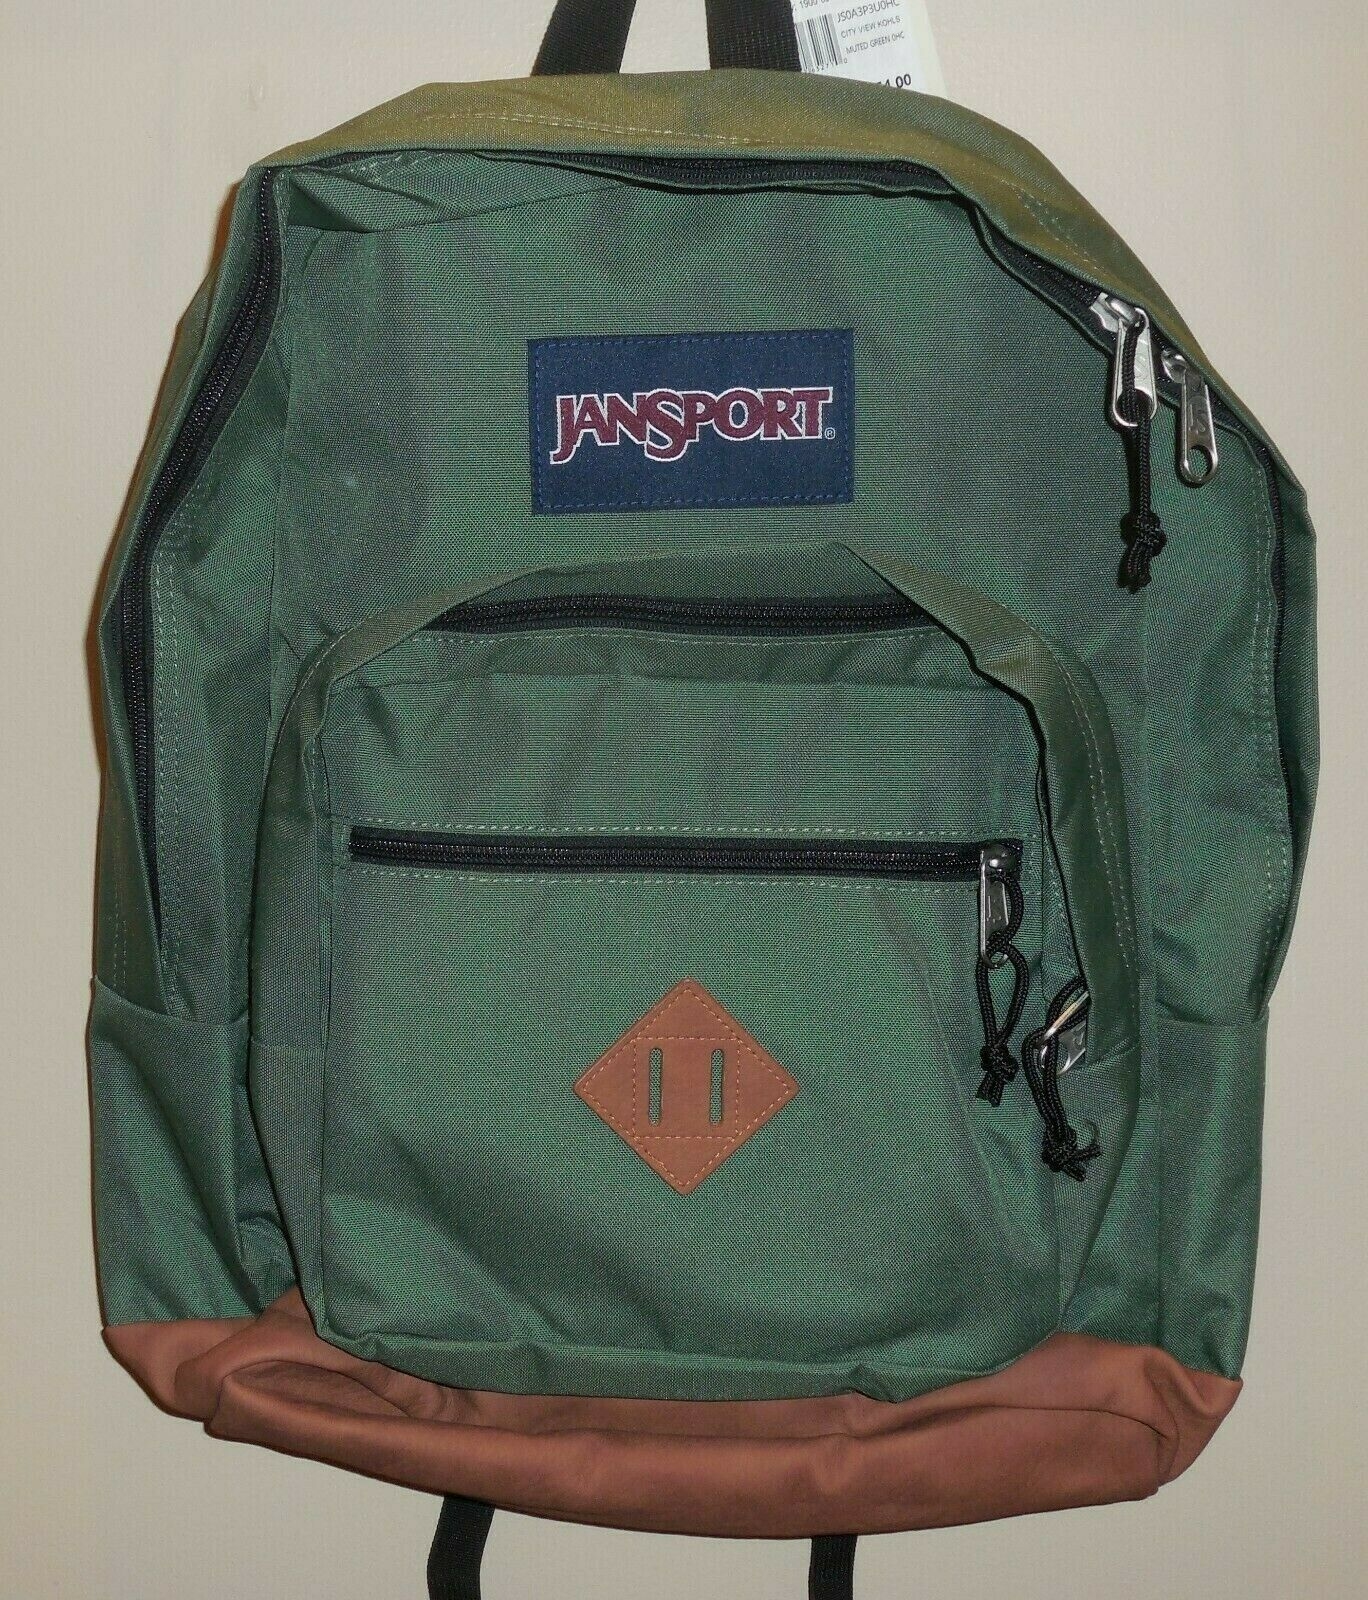 "Primary image for JanSport City View Dark Green Boys Girls Backpack Bookbag 15"" Laptop Sleeve New"